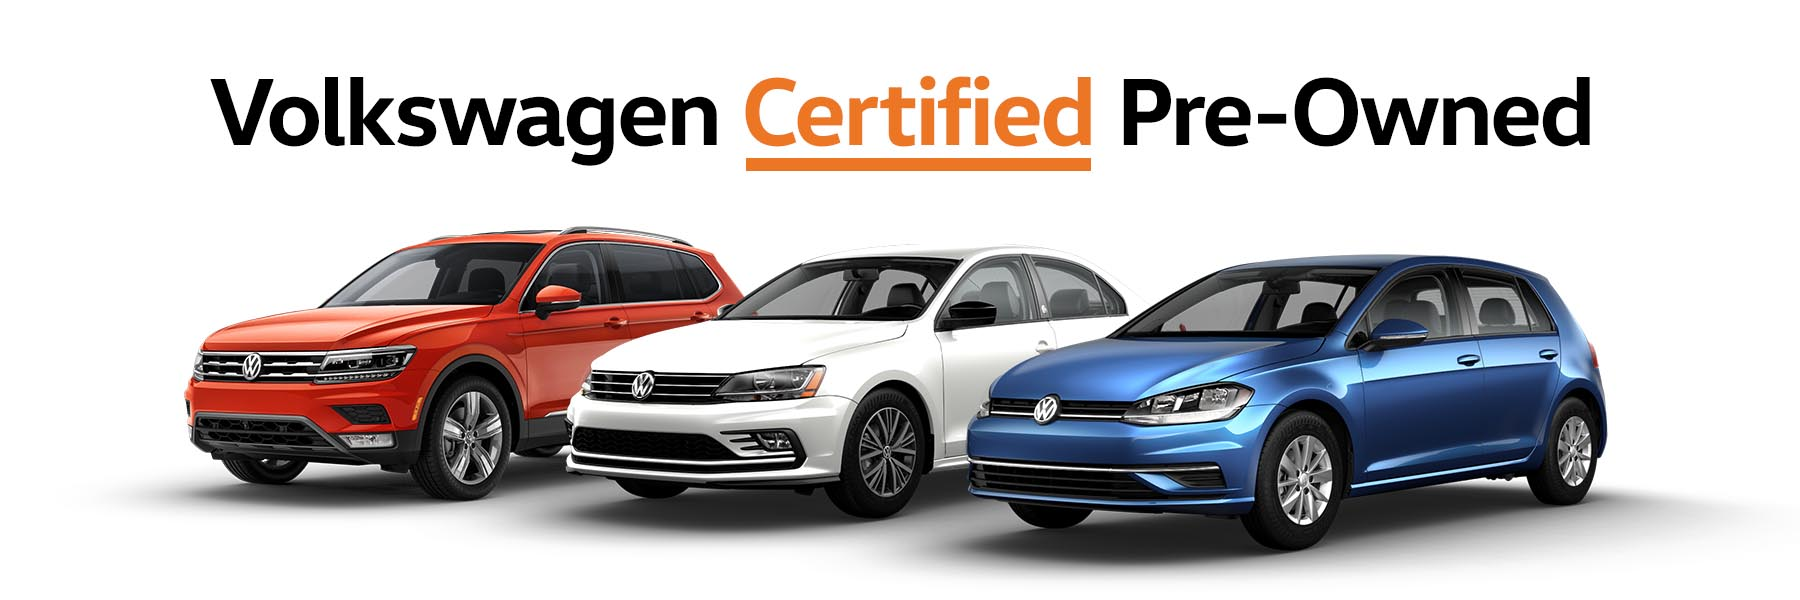 Volkswagen Certified Pre-Owned Vehicles